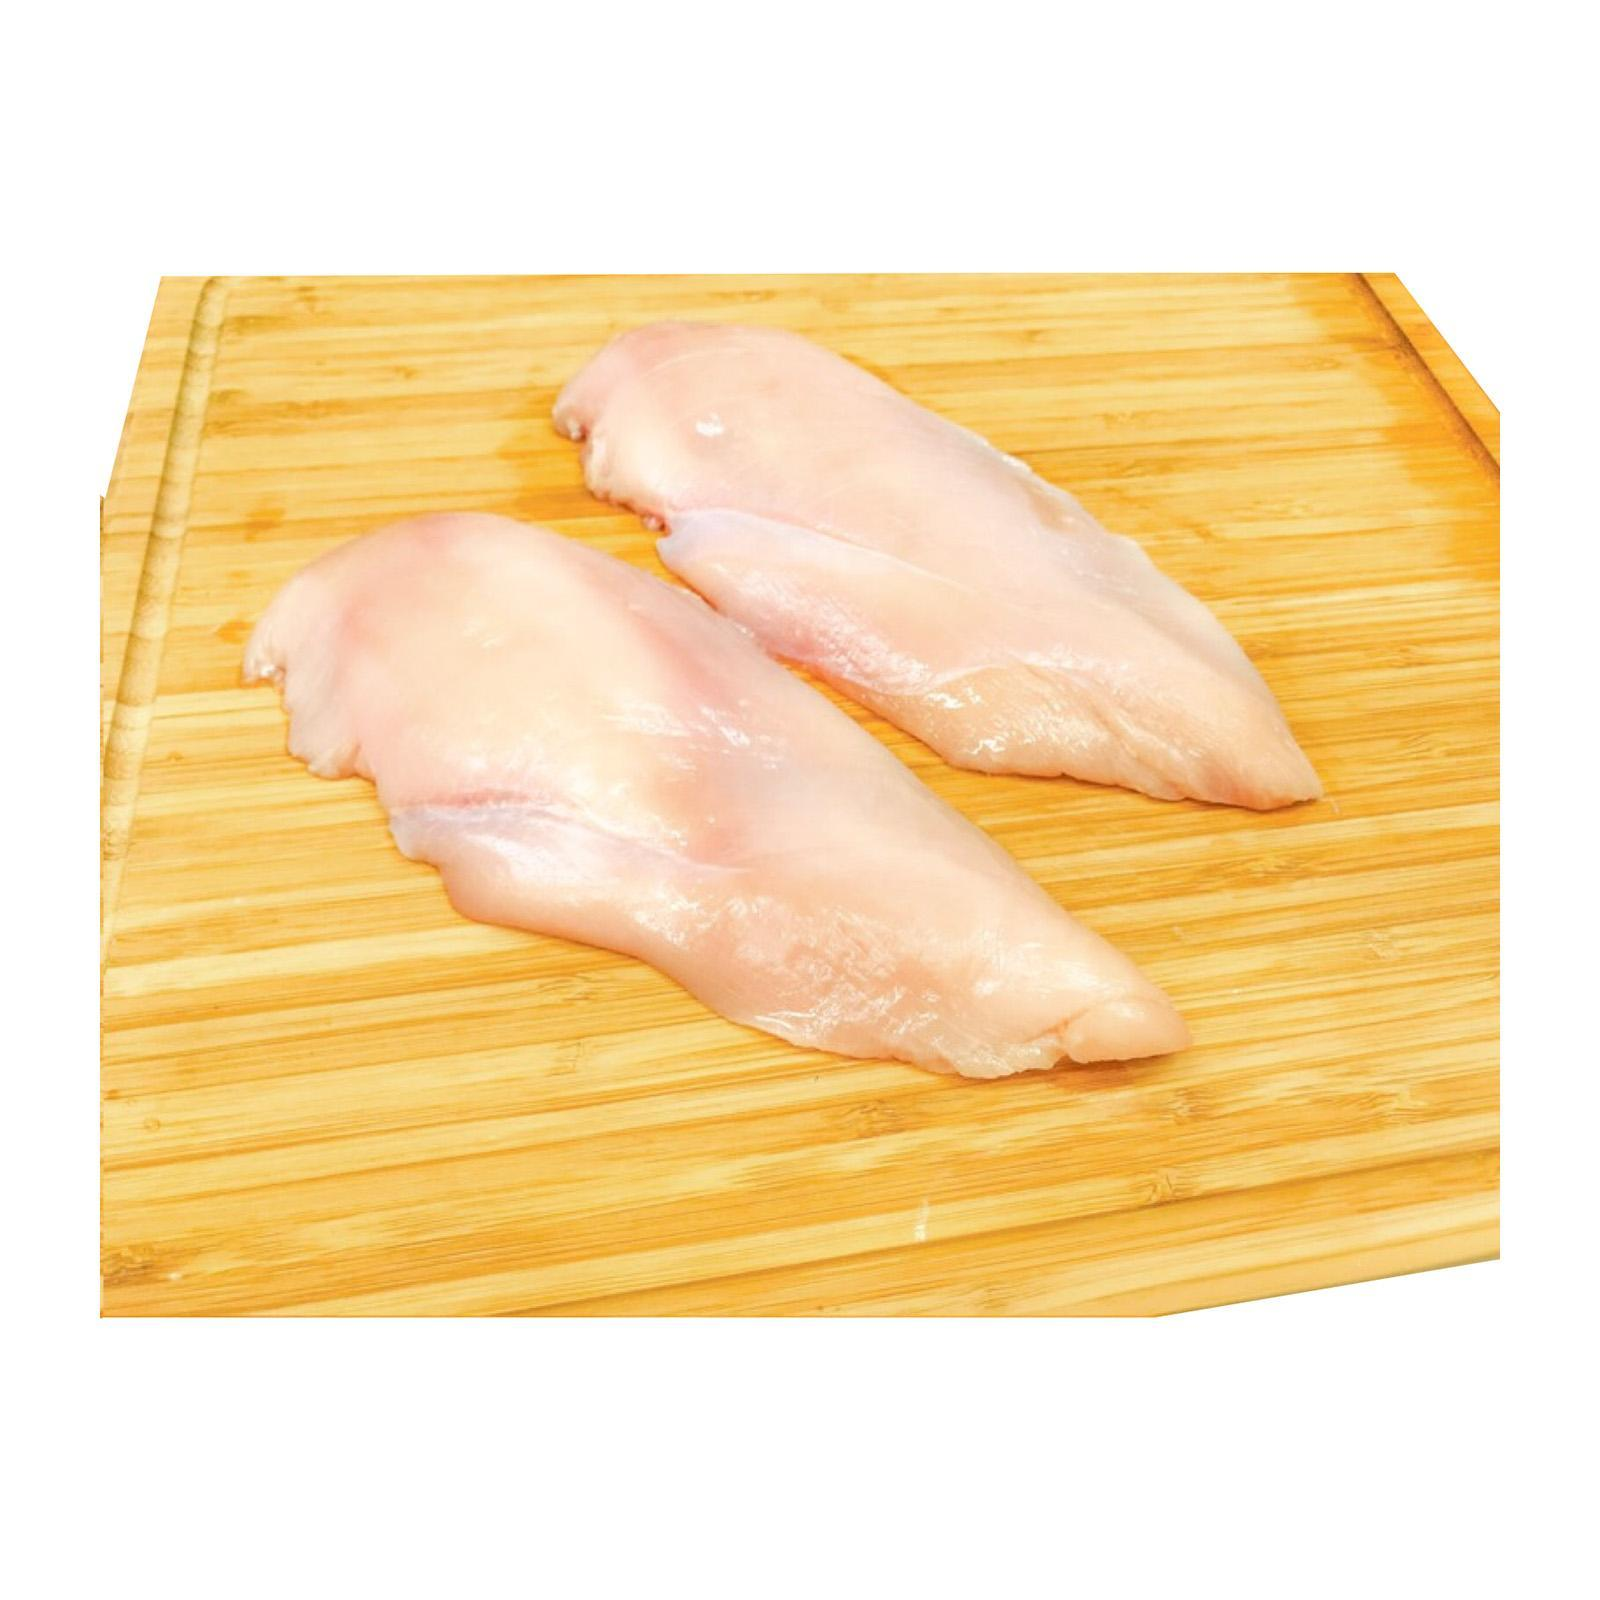 Master Grocer 99% Fat Free Chicken Breast Skinless Pre-Portion 2pcs - Chilled